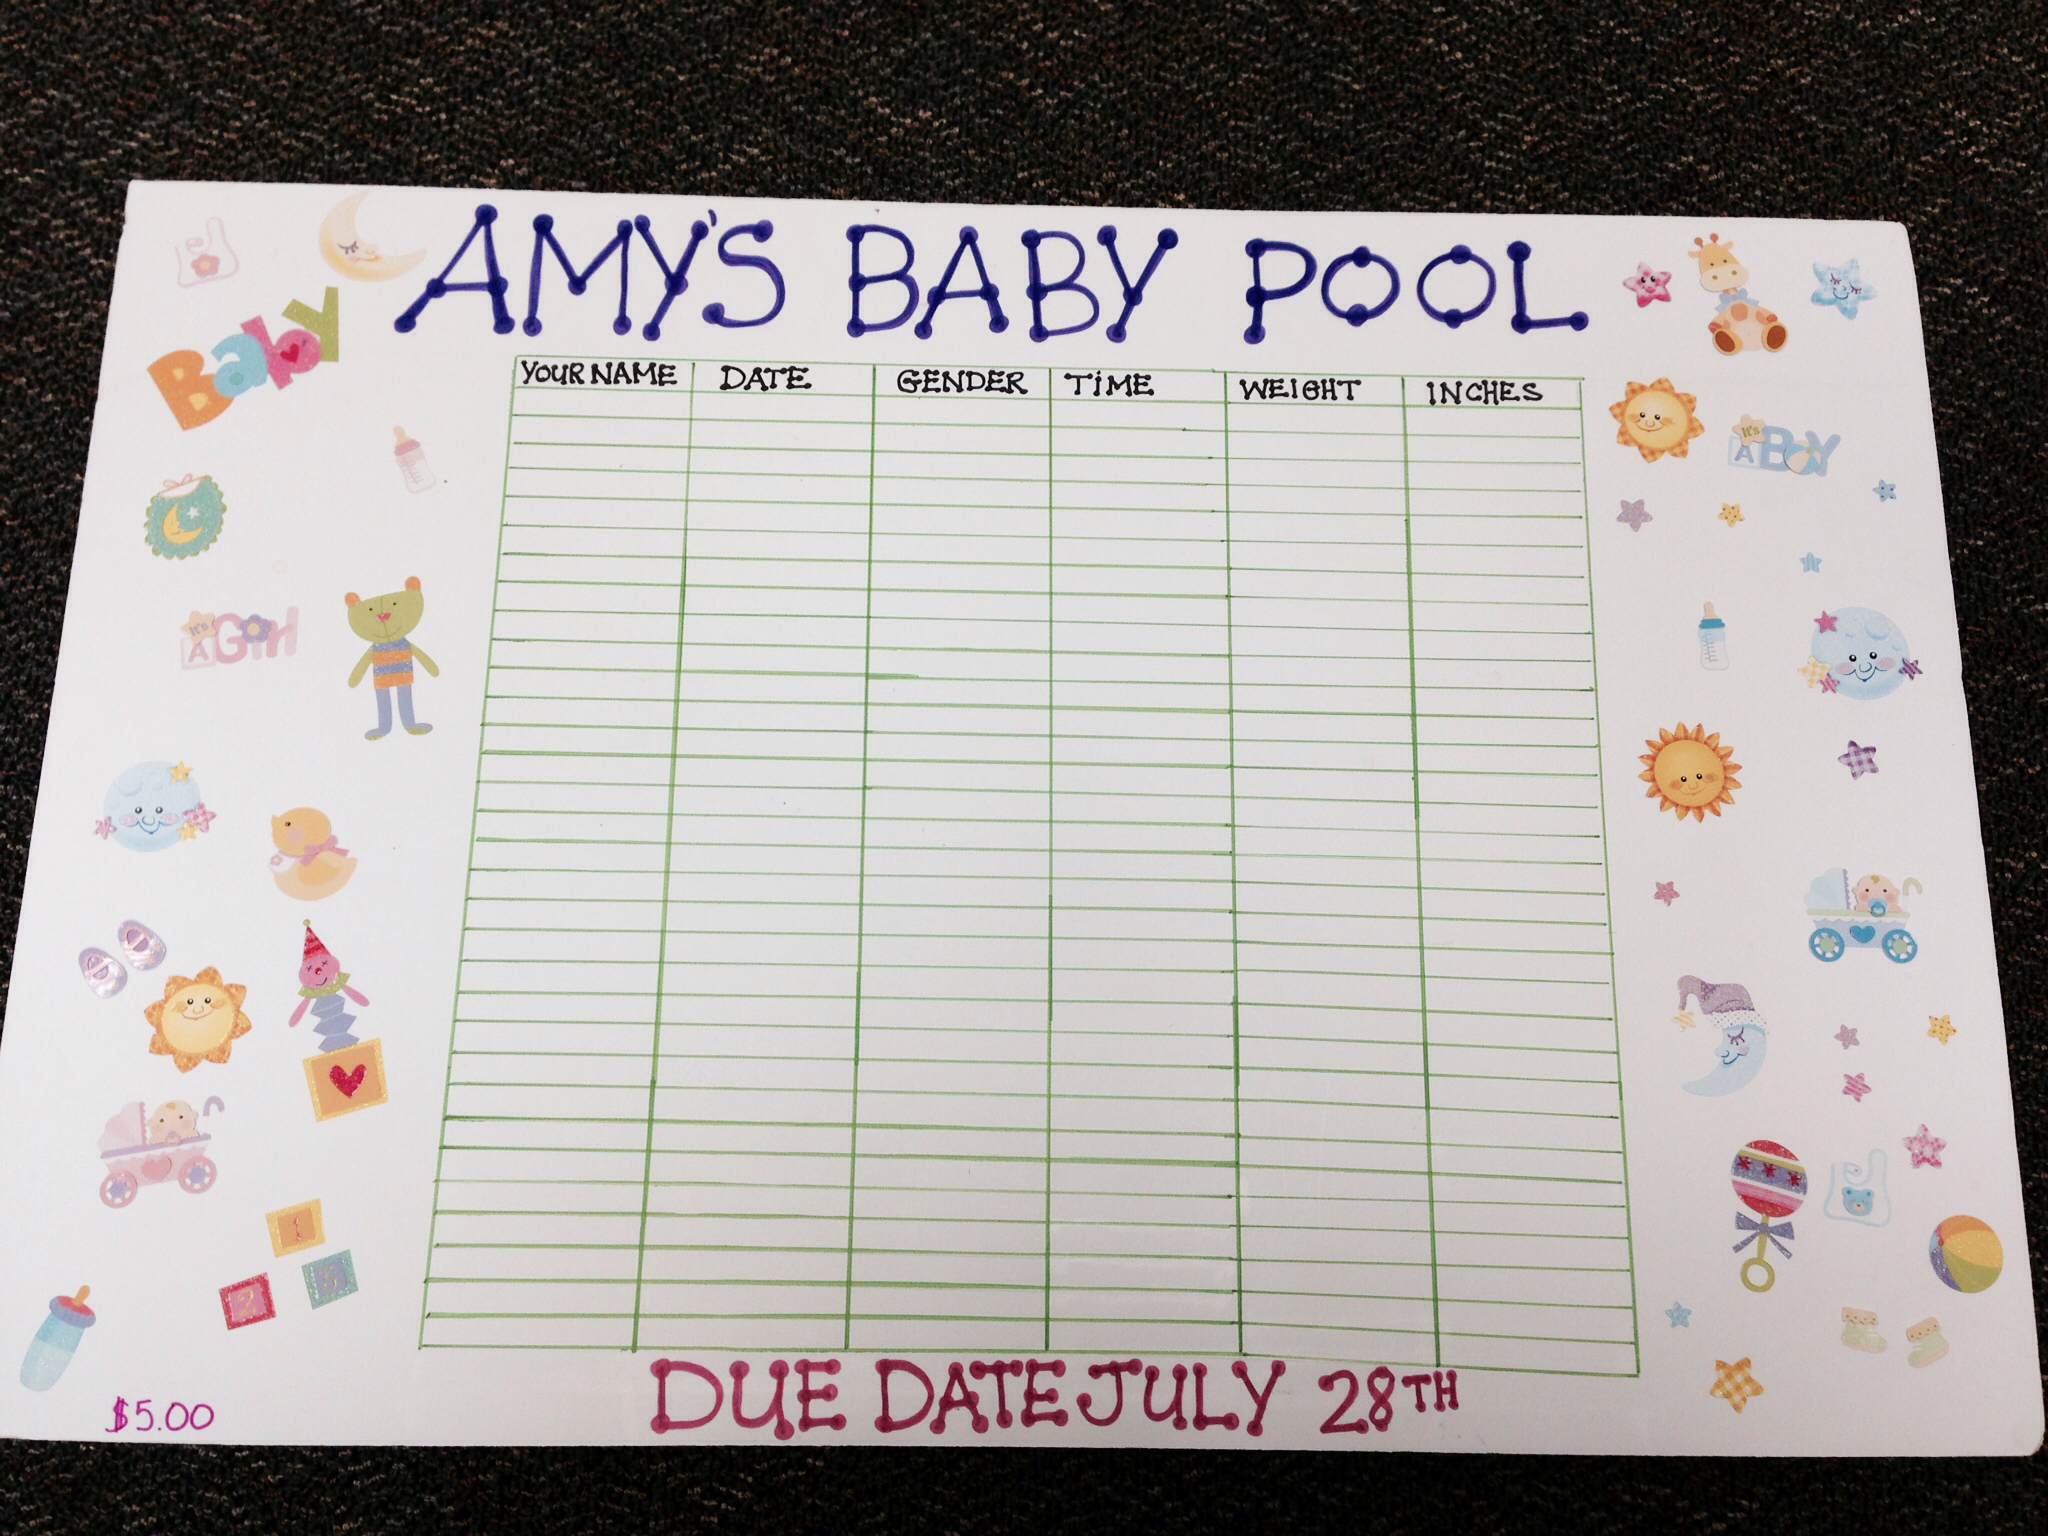 5 Images of Printable Office Baby Pool